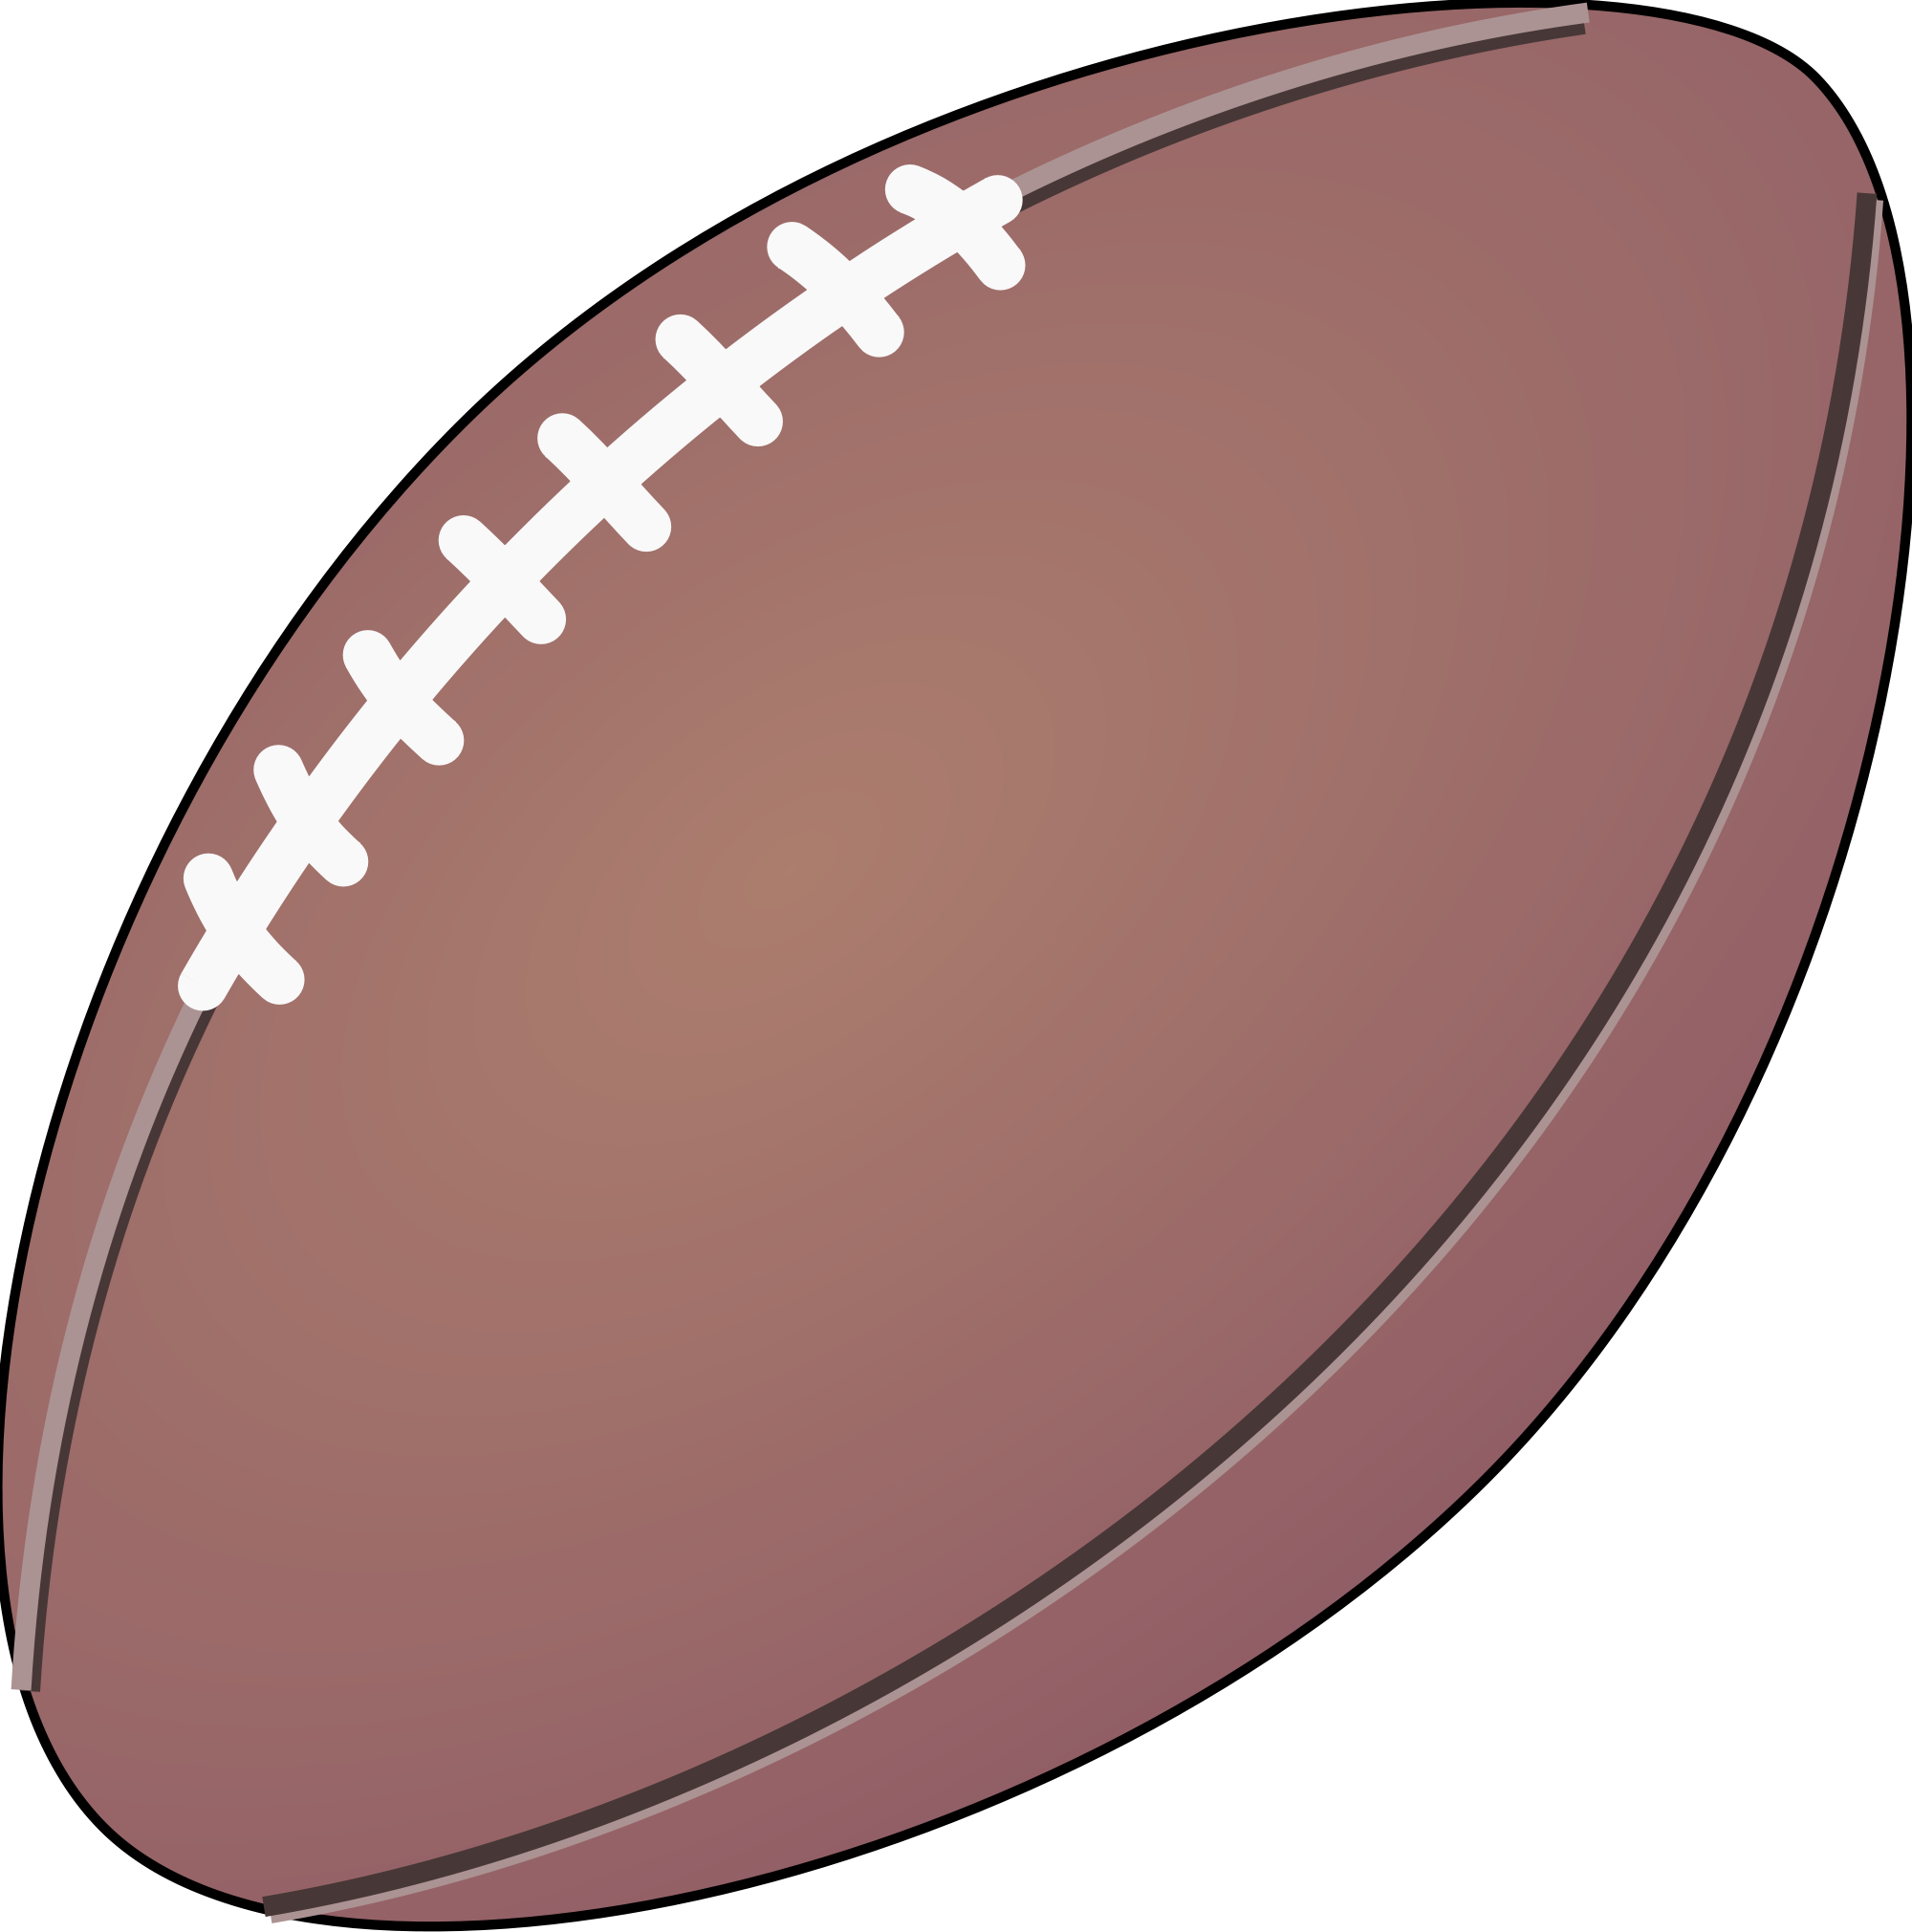 Destiny clipart hd banner black and white library Destiny Pictures Of Footballs To Print Football Images Free Clipart ... banner black and white library